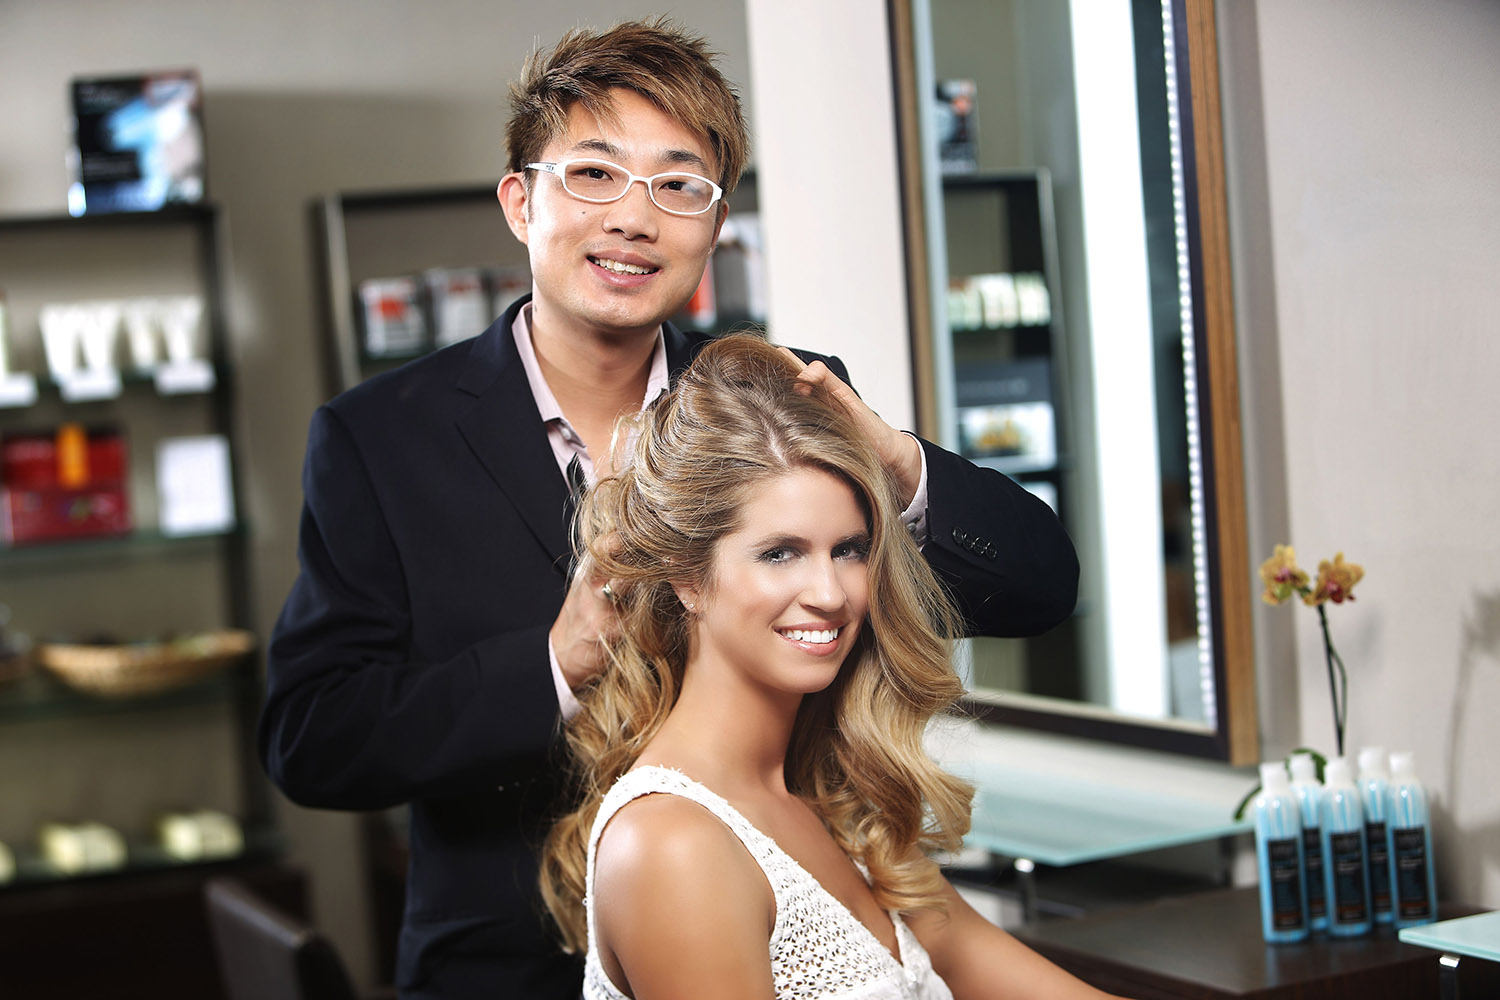 Nelson j. Salon owner and celebrity stylist Nelson Chan.